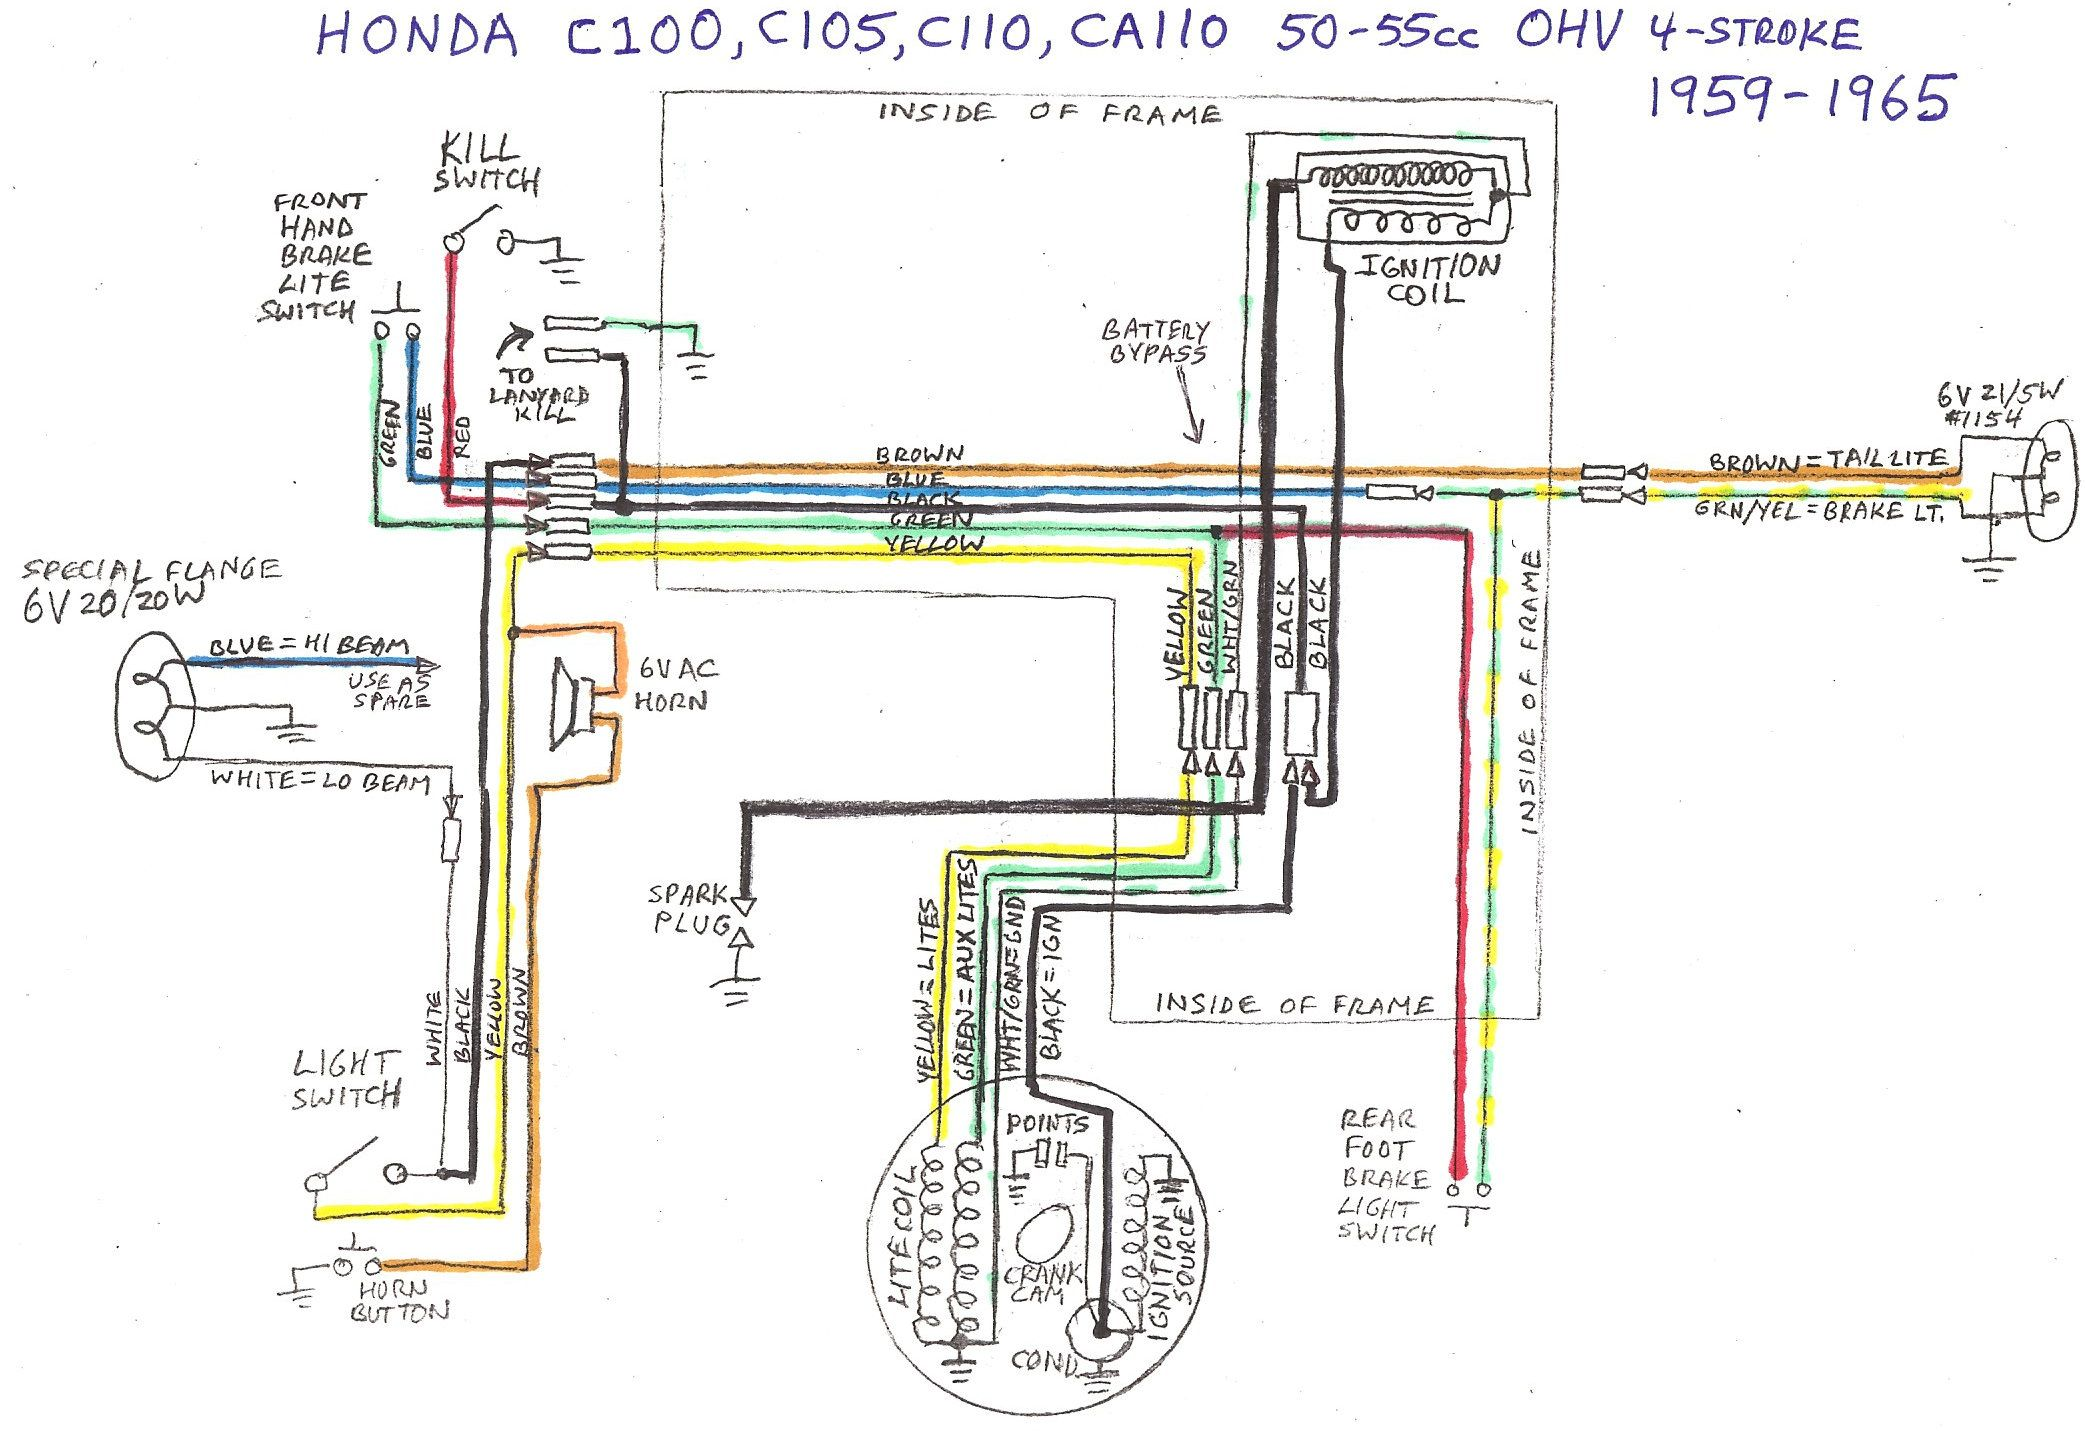 Honda Ct70 Wiring Diagram | Wiring Diagram on